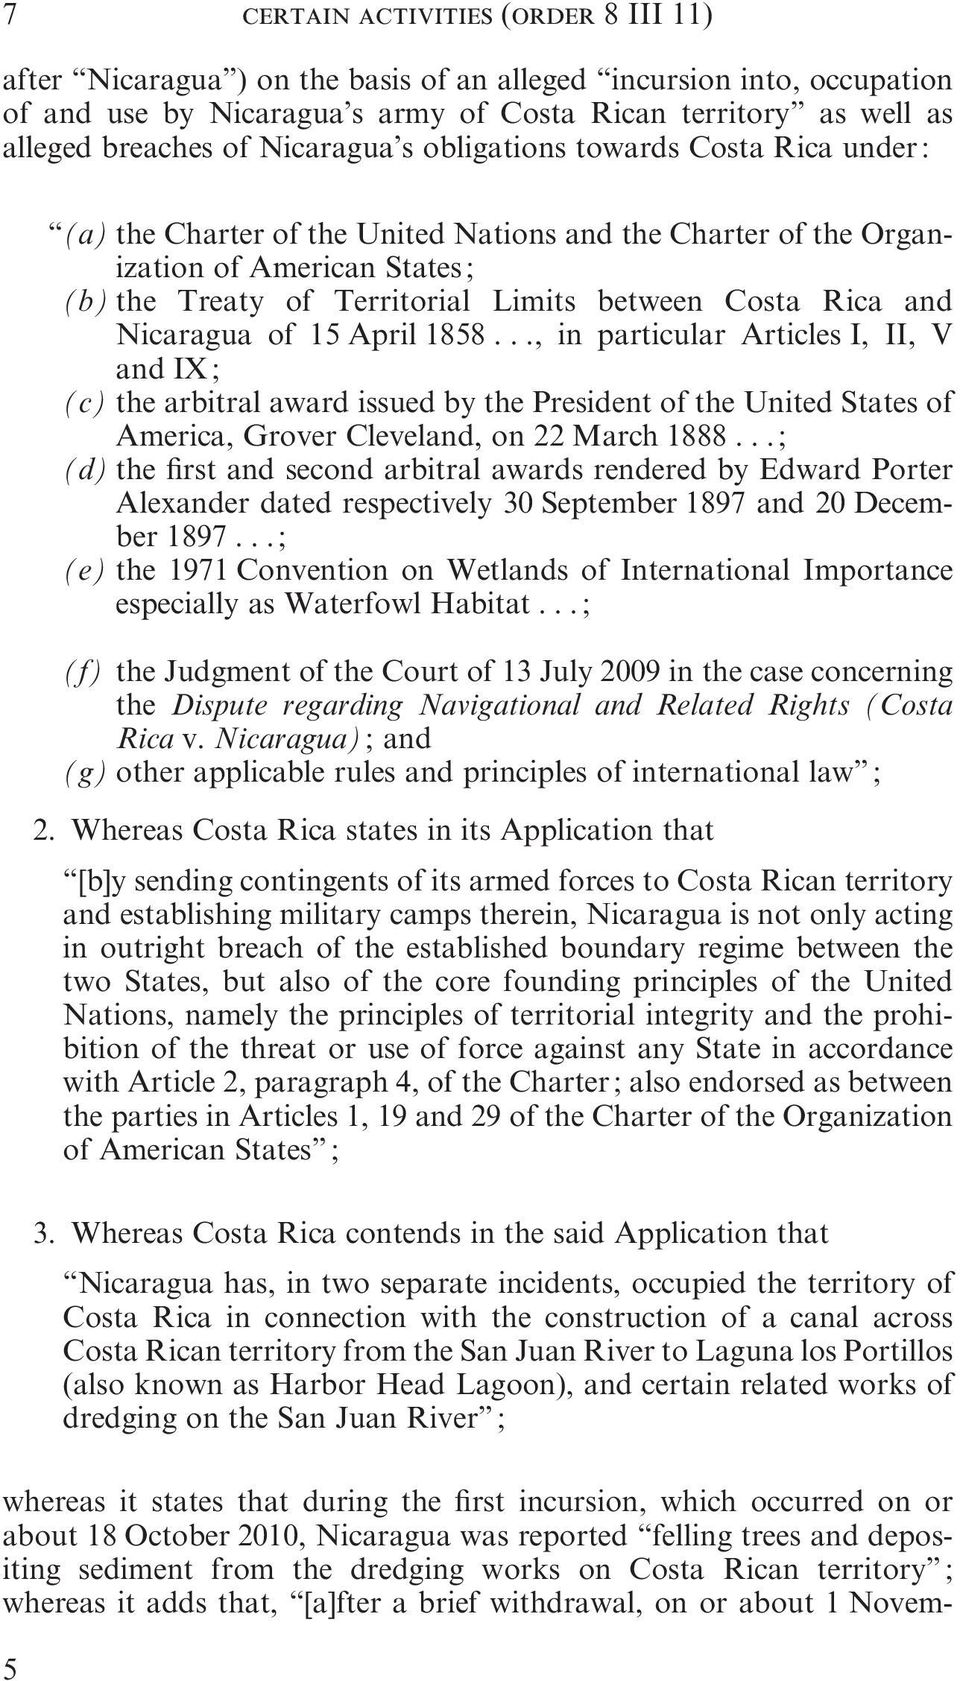 Rica and Nicaragua of 15 April 1858..., in particular Articles I, II, V and IX ; (c) the arbitral award issued by the President of the United States of America, Grover Cleveland, on 22 March 1888.